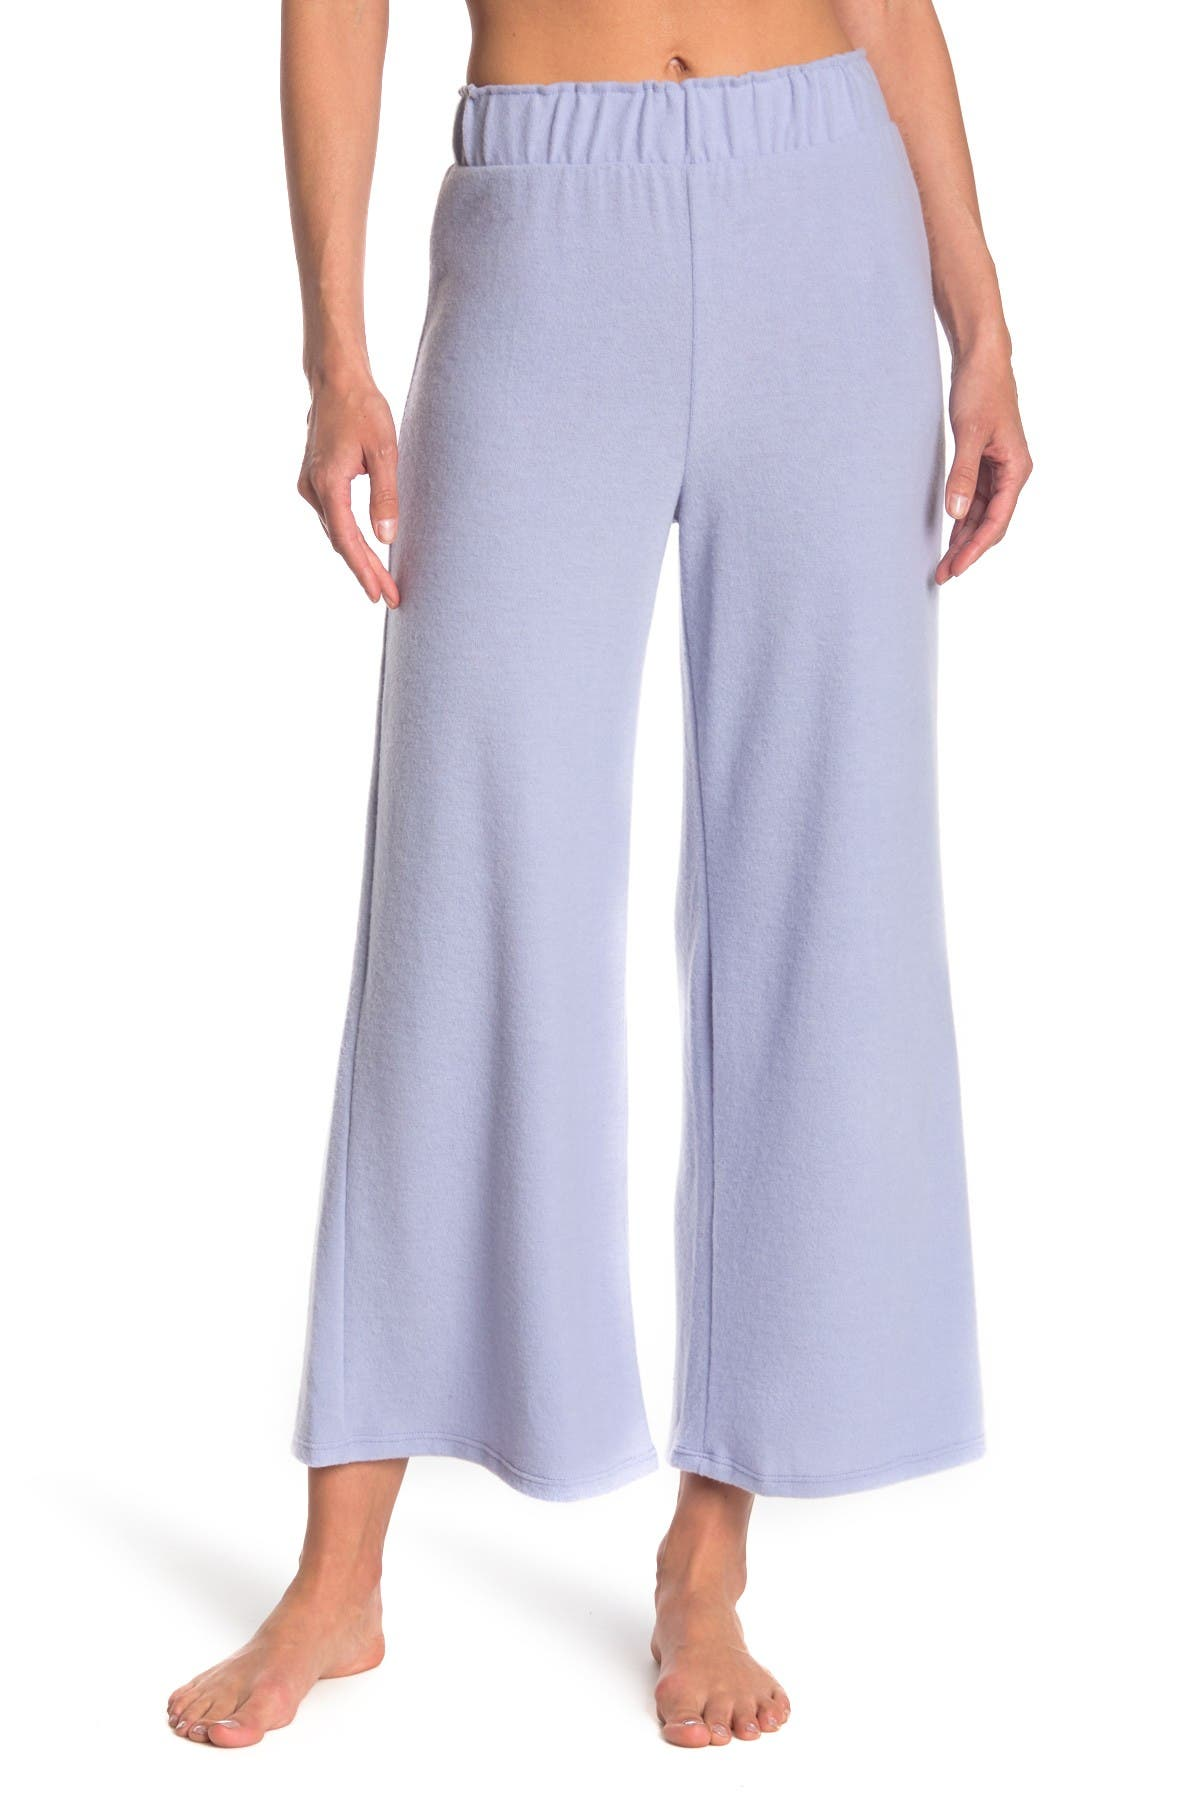 Image of Socialite Brushed Wide Leg Pants